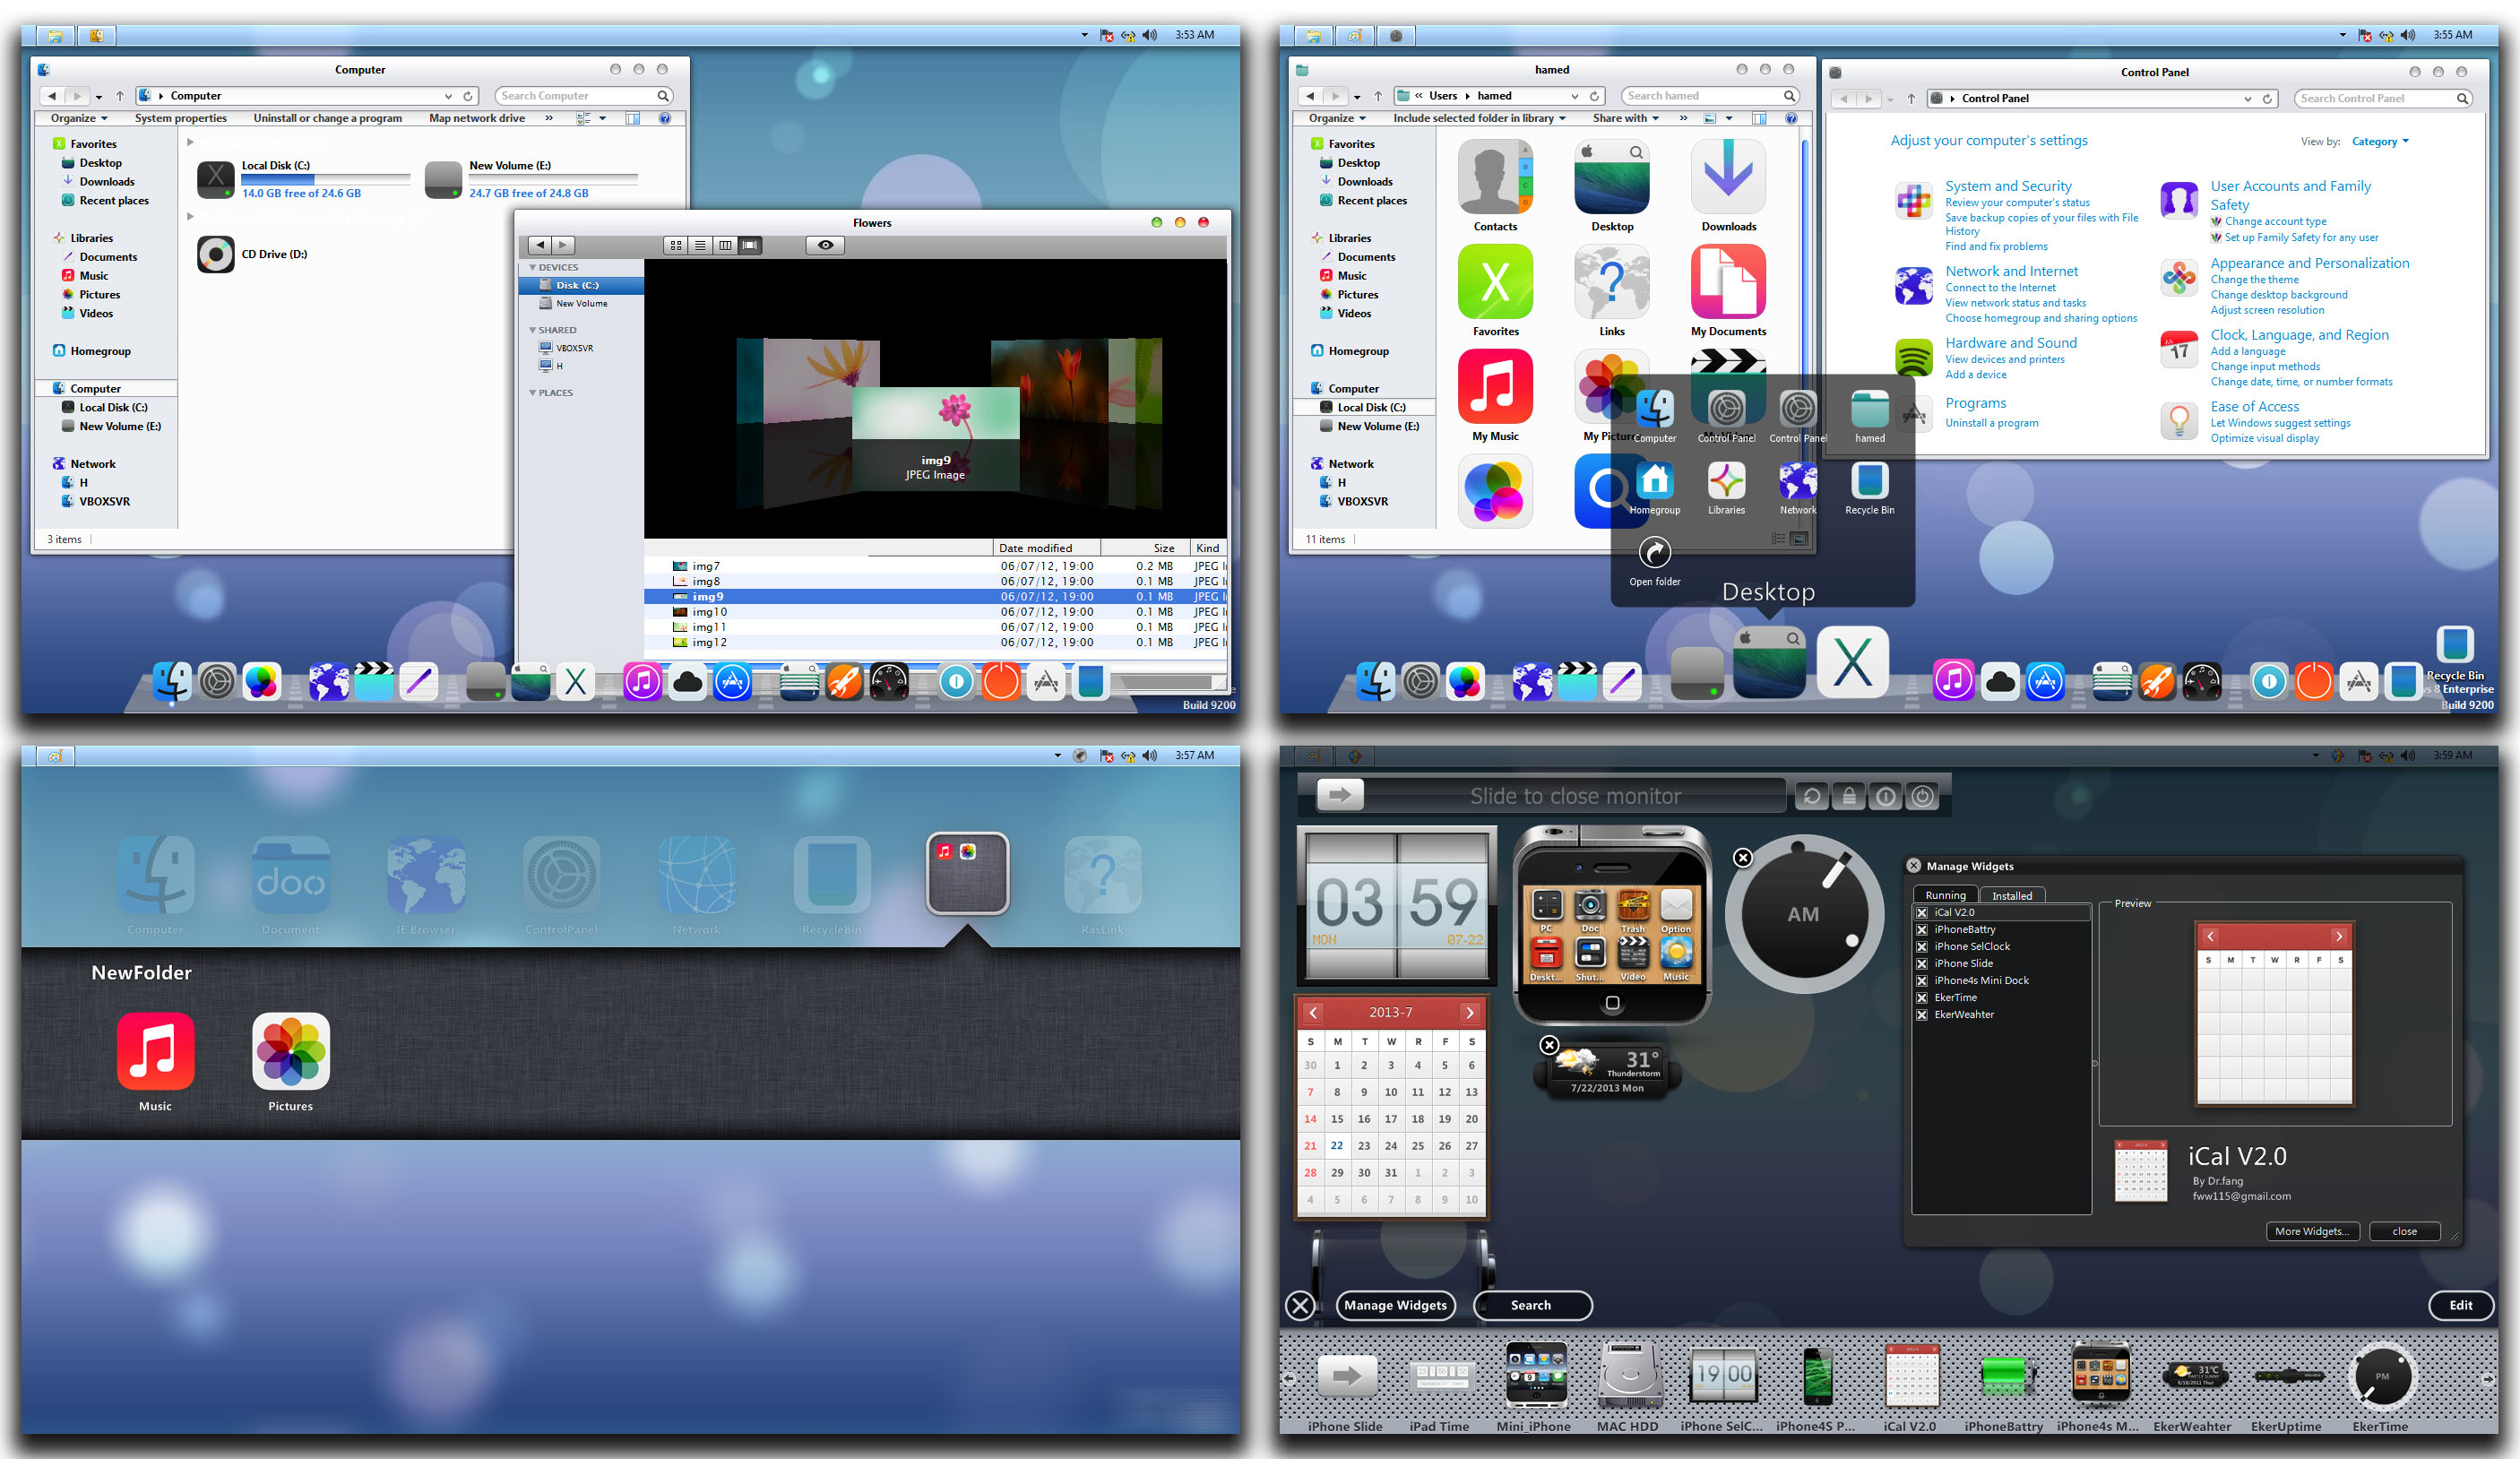 iOS7 Skin Pack for Win8 released